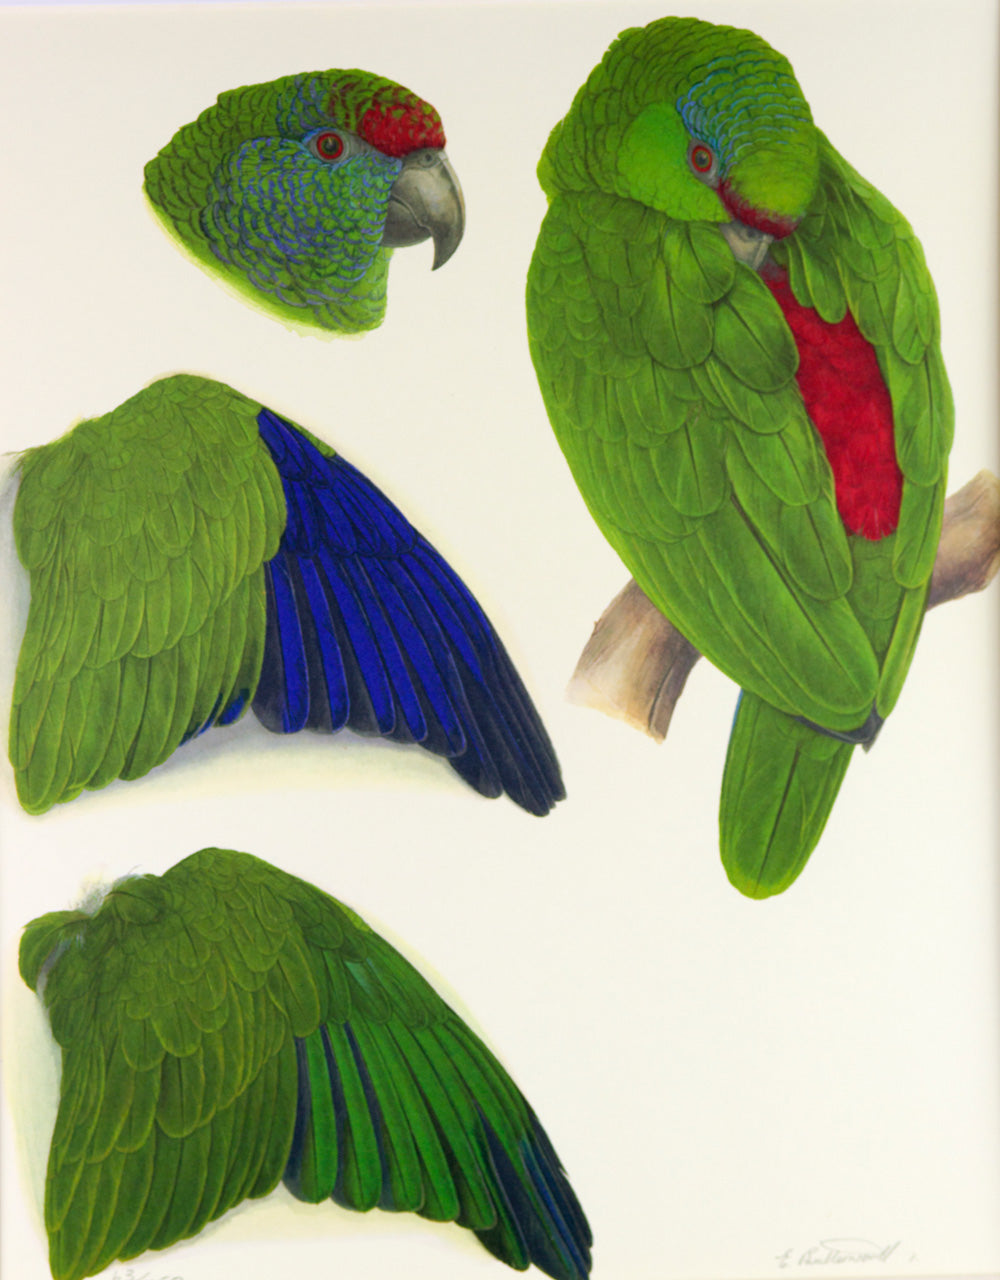 Tucuman Amazon Limited edition print Elizabeth Butterworth World Parrot Trust